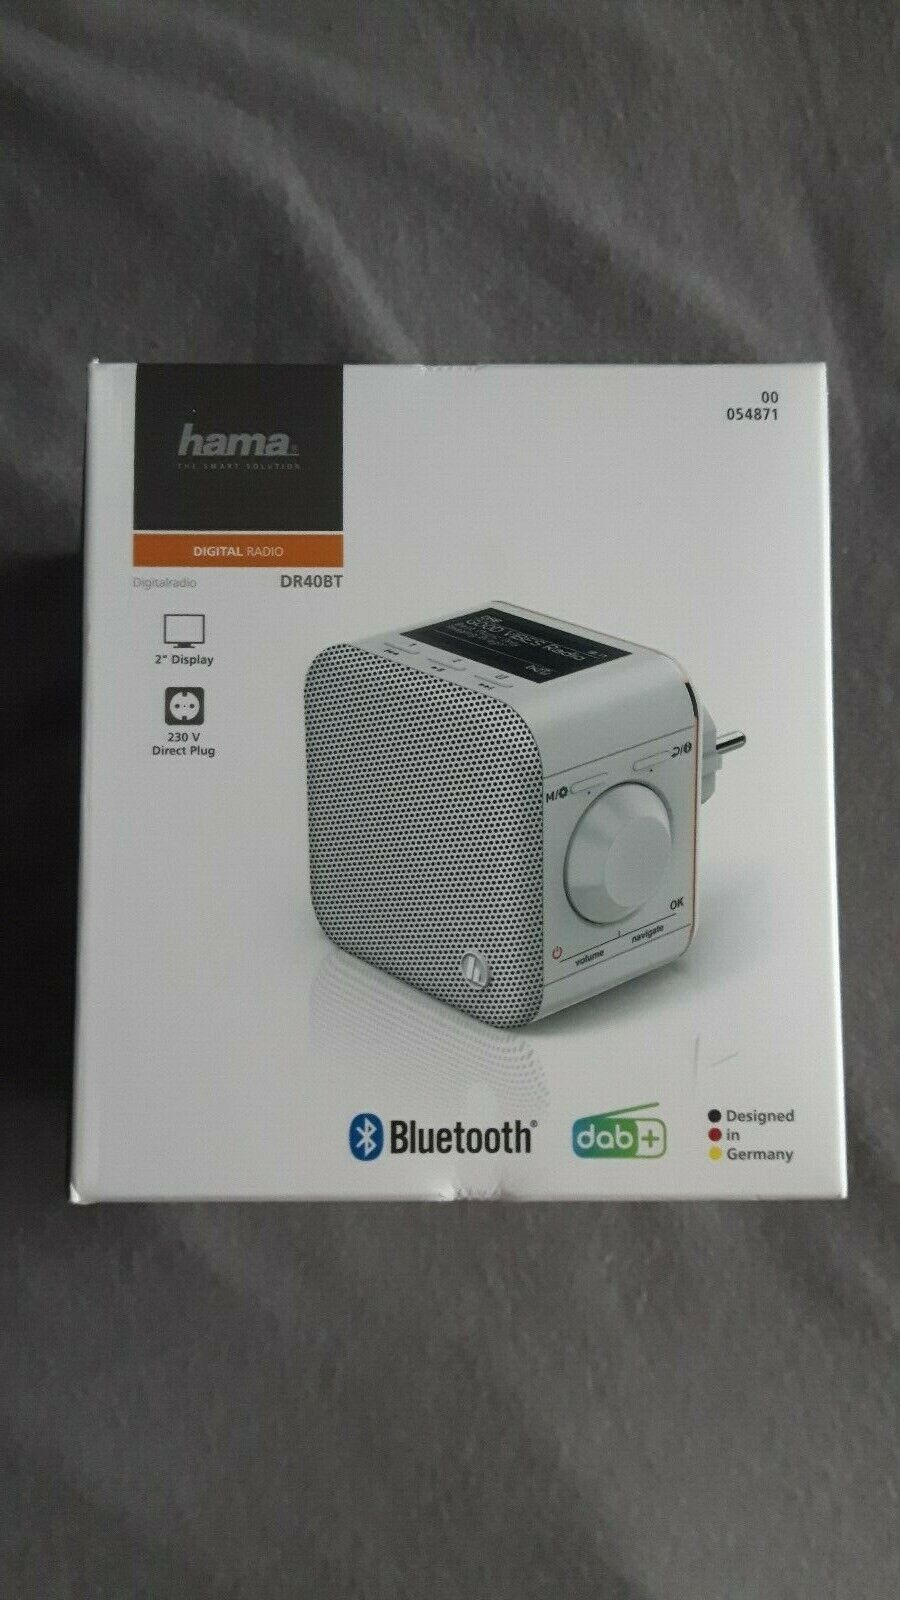 Hama Digitalradio DR40BT -PlugIn Steckdosenradio DAB, DAB+, FM, Bluetooth